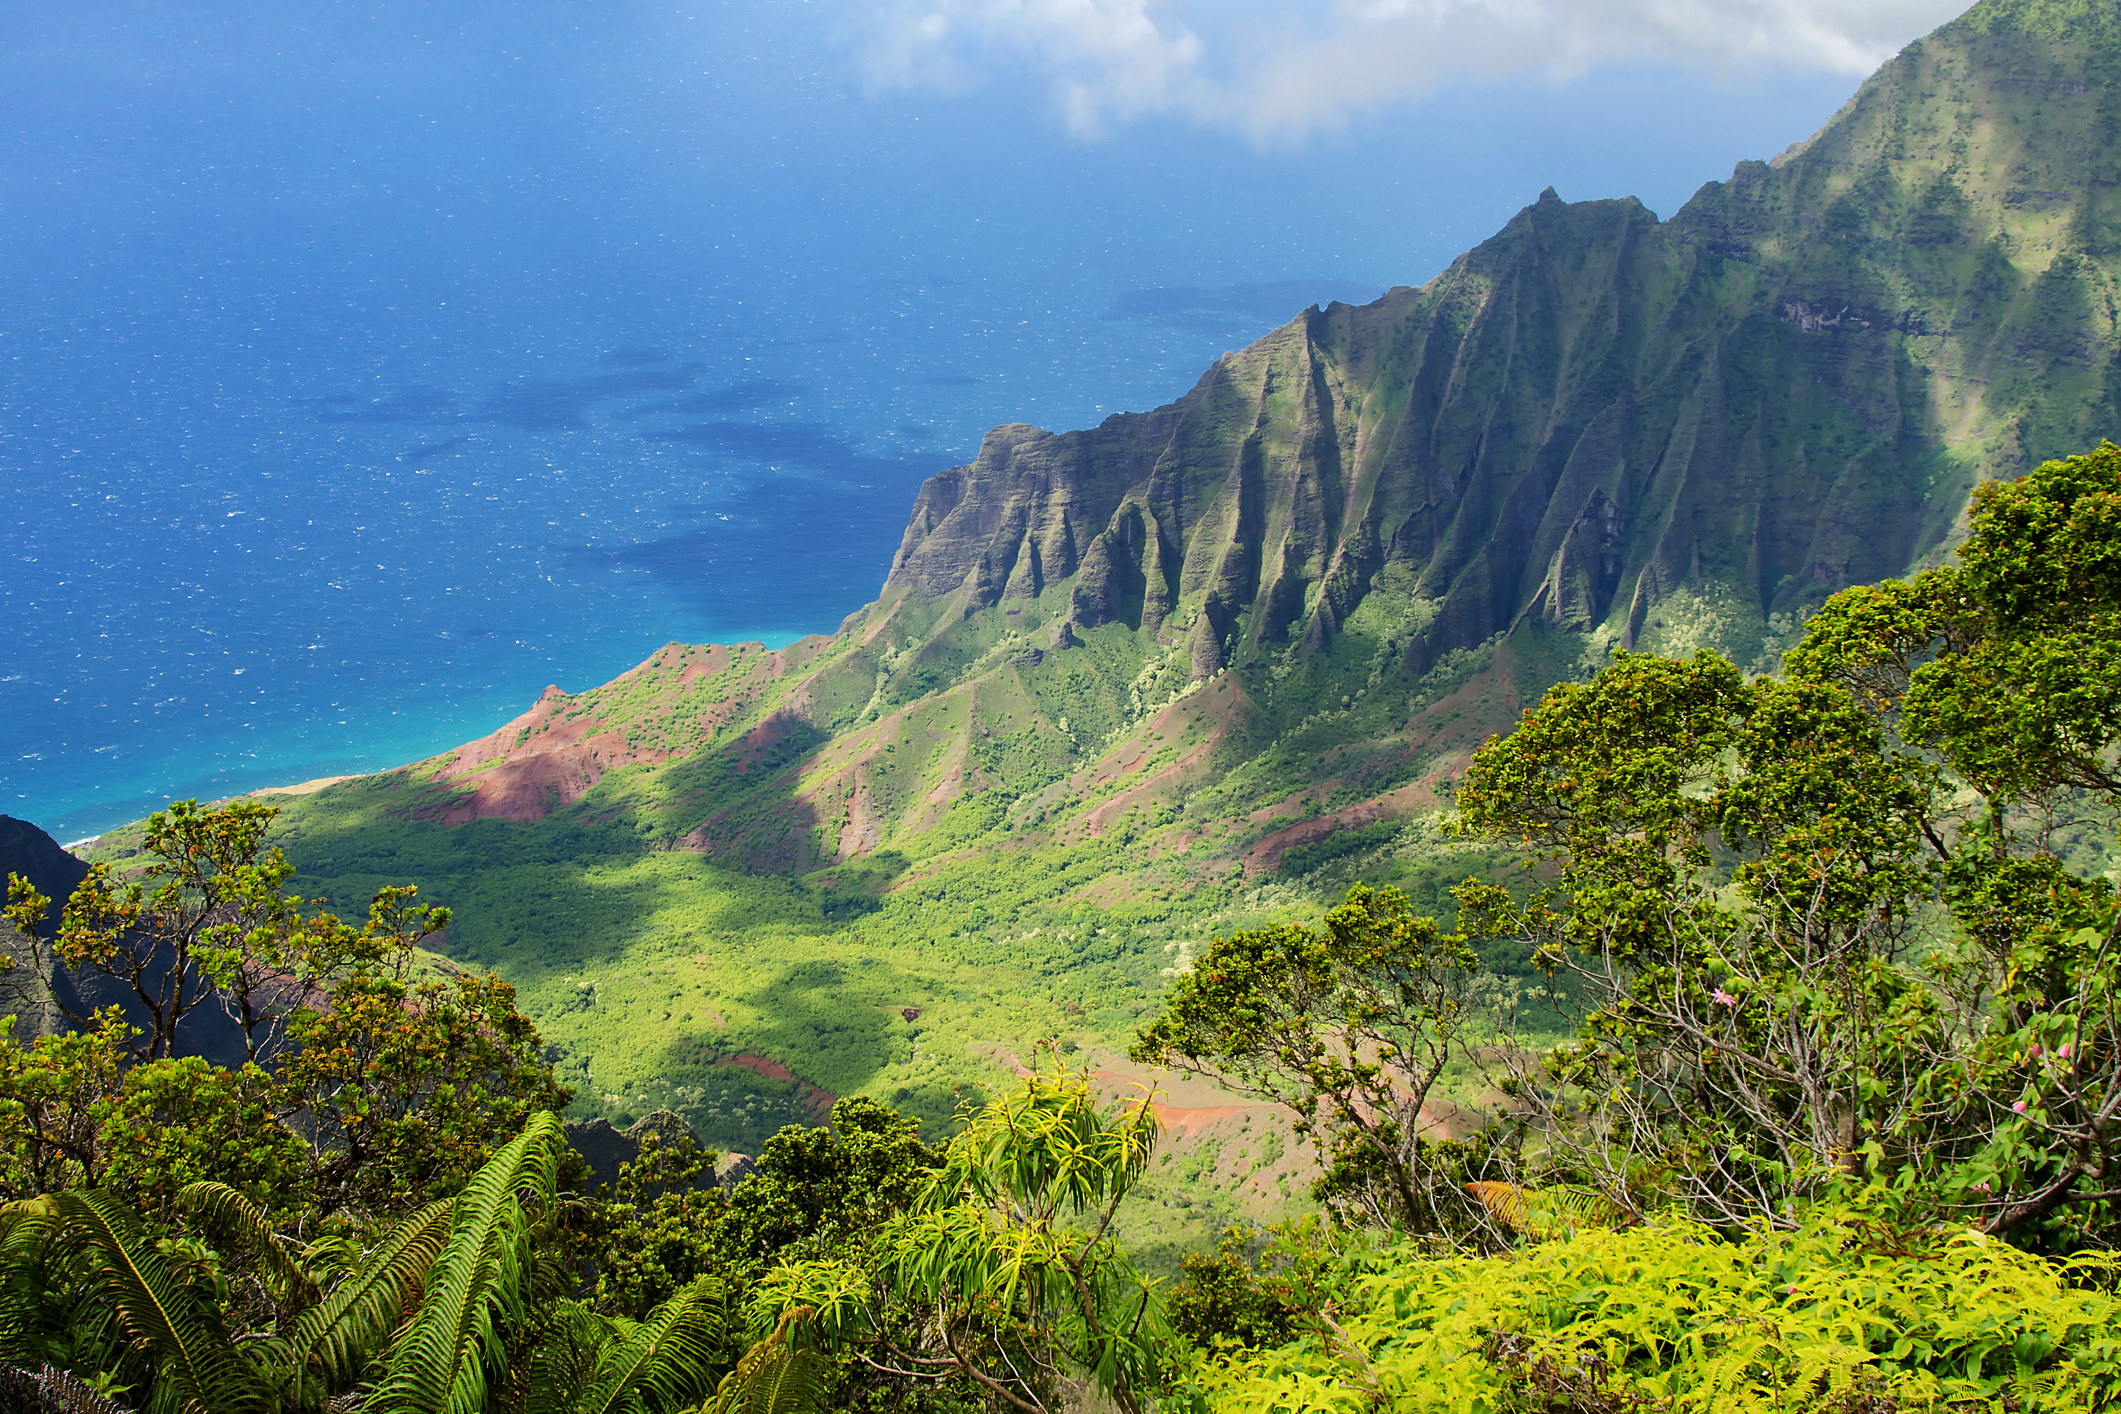 Green-covered mountains leading down to a blue ocean